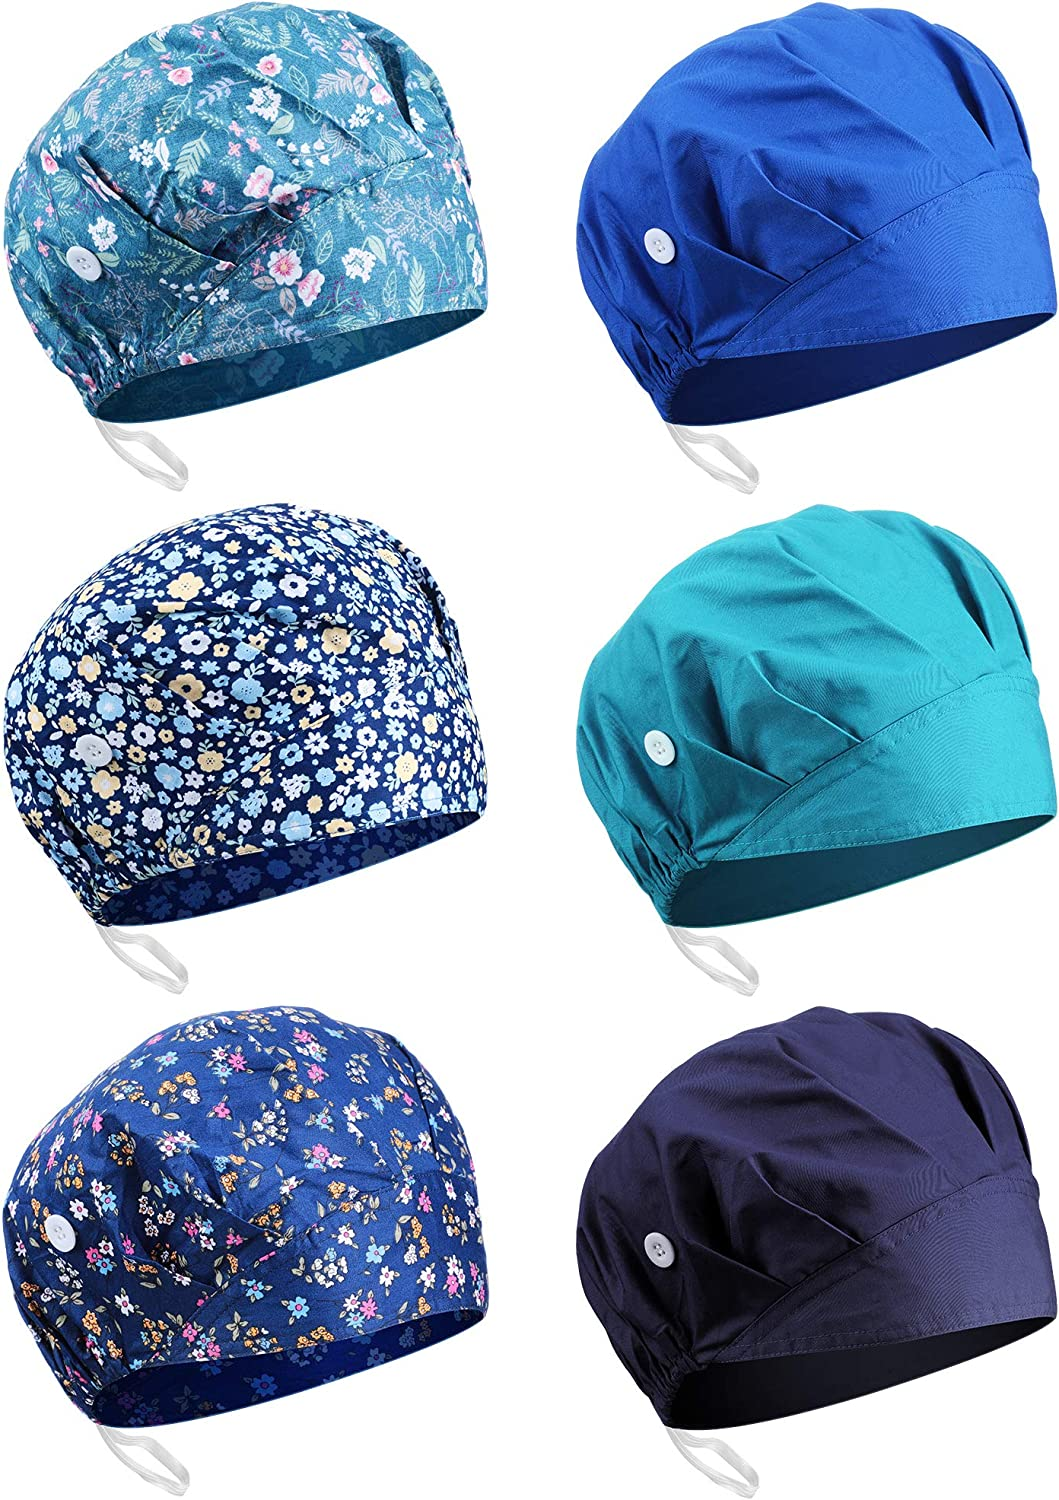 Syhood 6 Max 69% OFF Pieces Button Cap Direct sale of manufacturer with Bouffant Sweatband Ha Adjustable